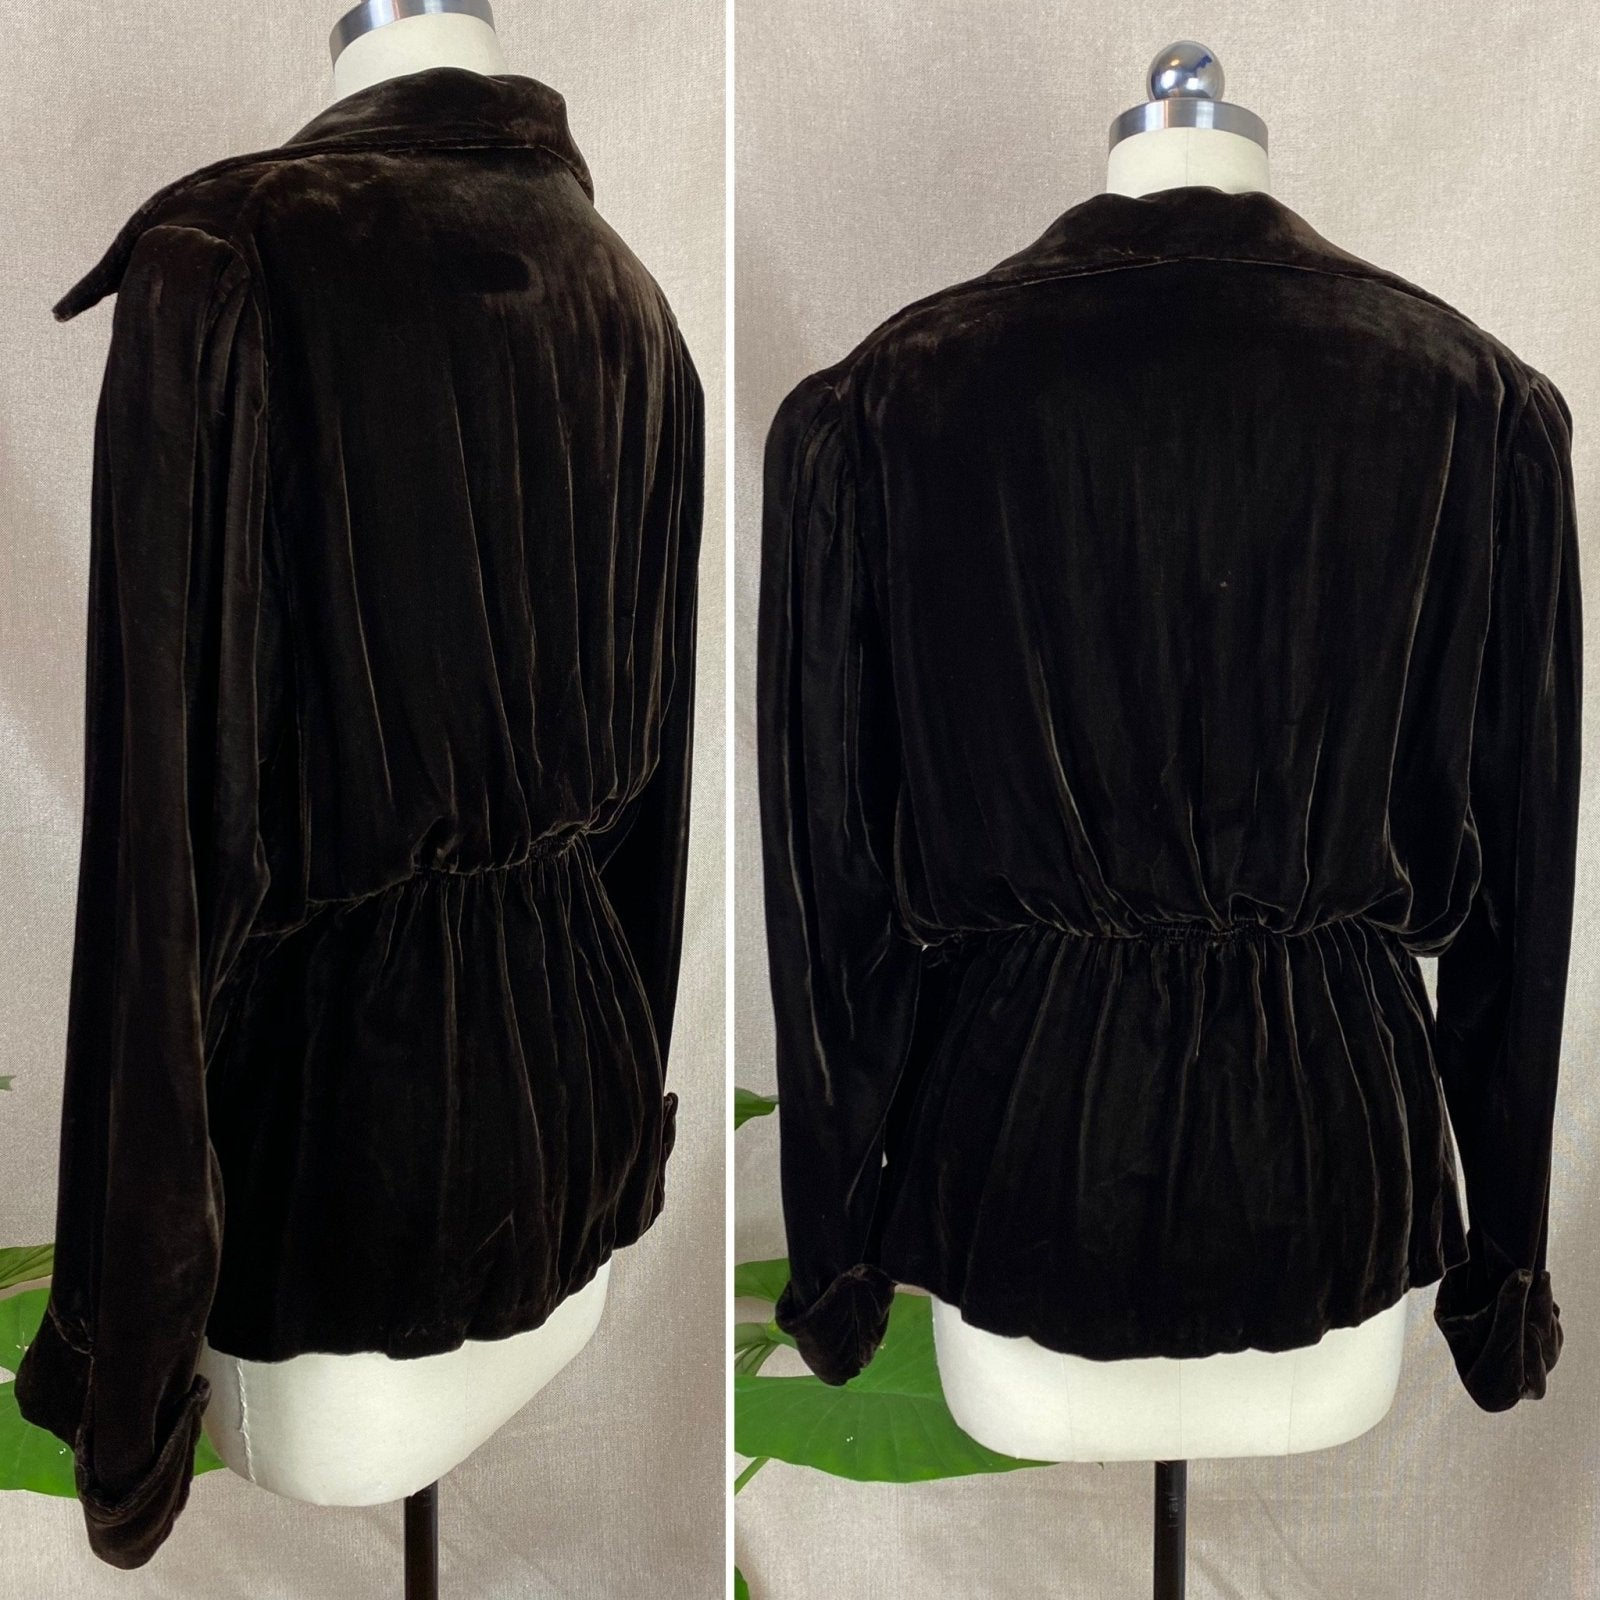 Vintage 1930's Jacket | Deep Mocha Brown Silk Velvet with Bias Cut & Peplum Waist | Size M, LG | Derry's - Daggers & Dames